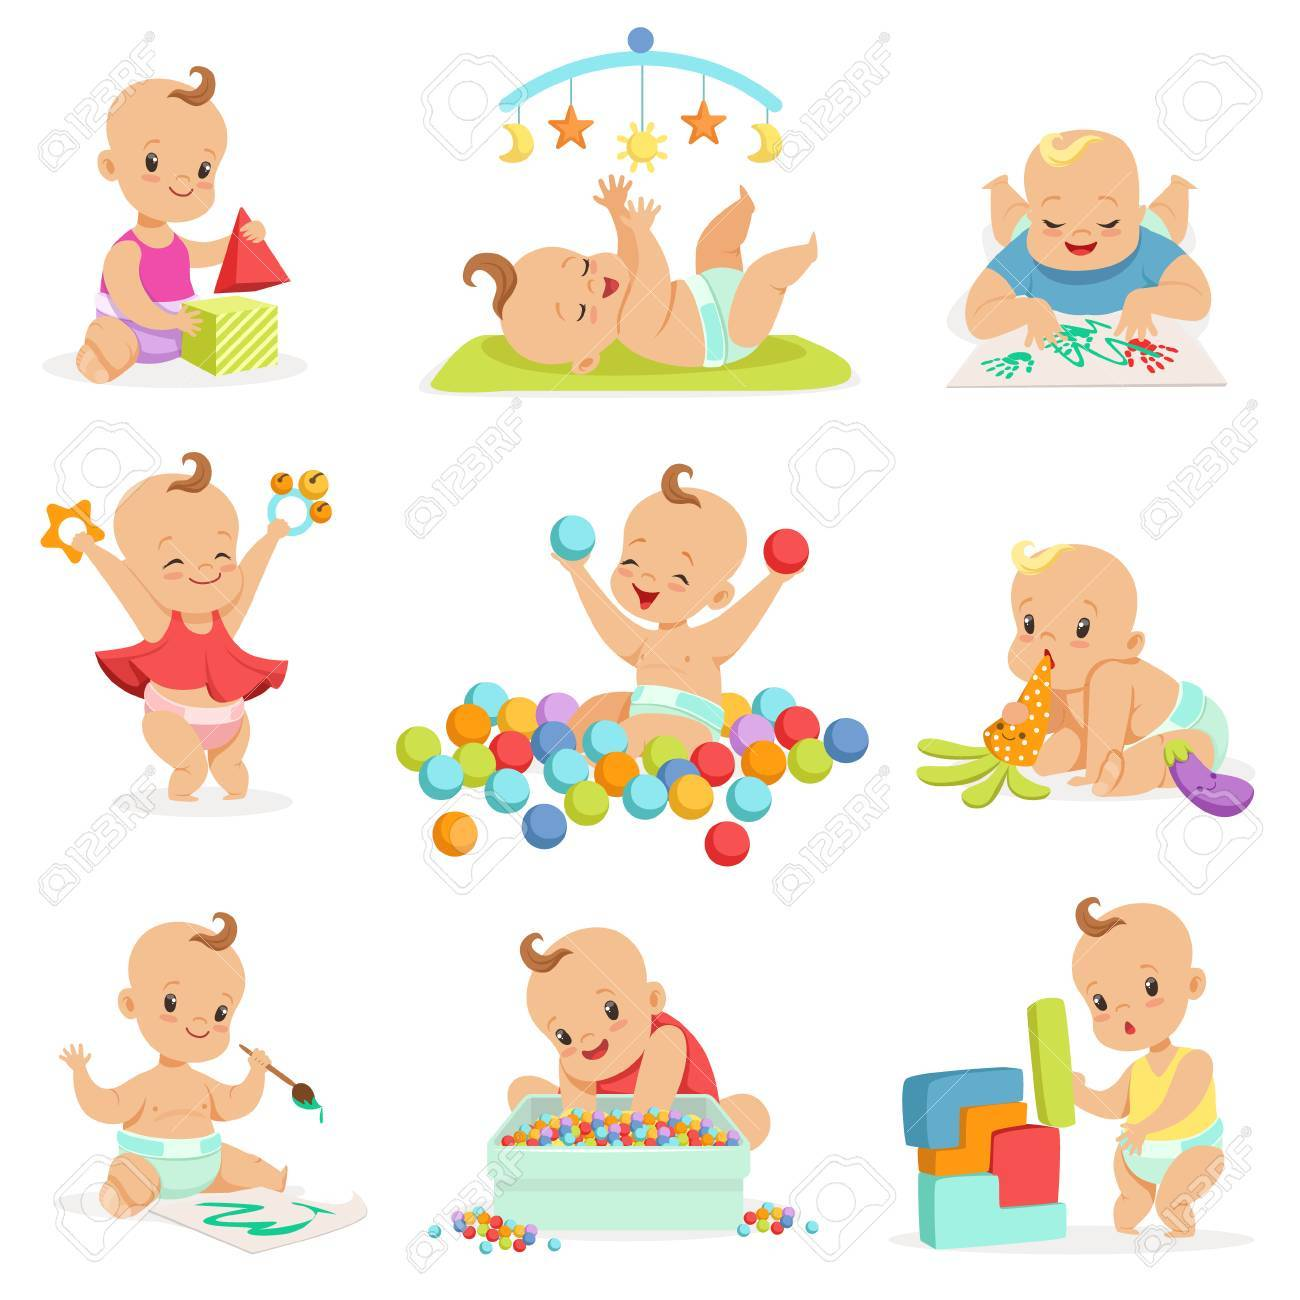 Adorable Girly Cartoon Babies Playing With Their Stuffed Toys And Development Tools Series Of Cute Happy